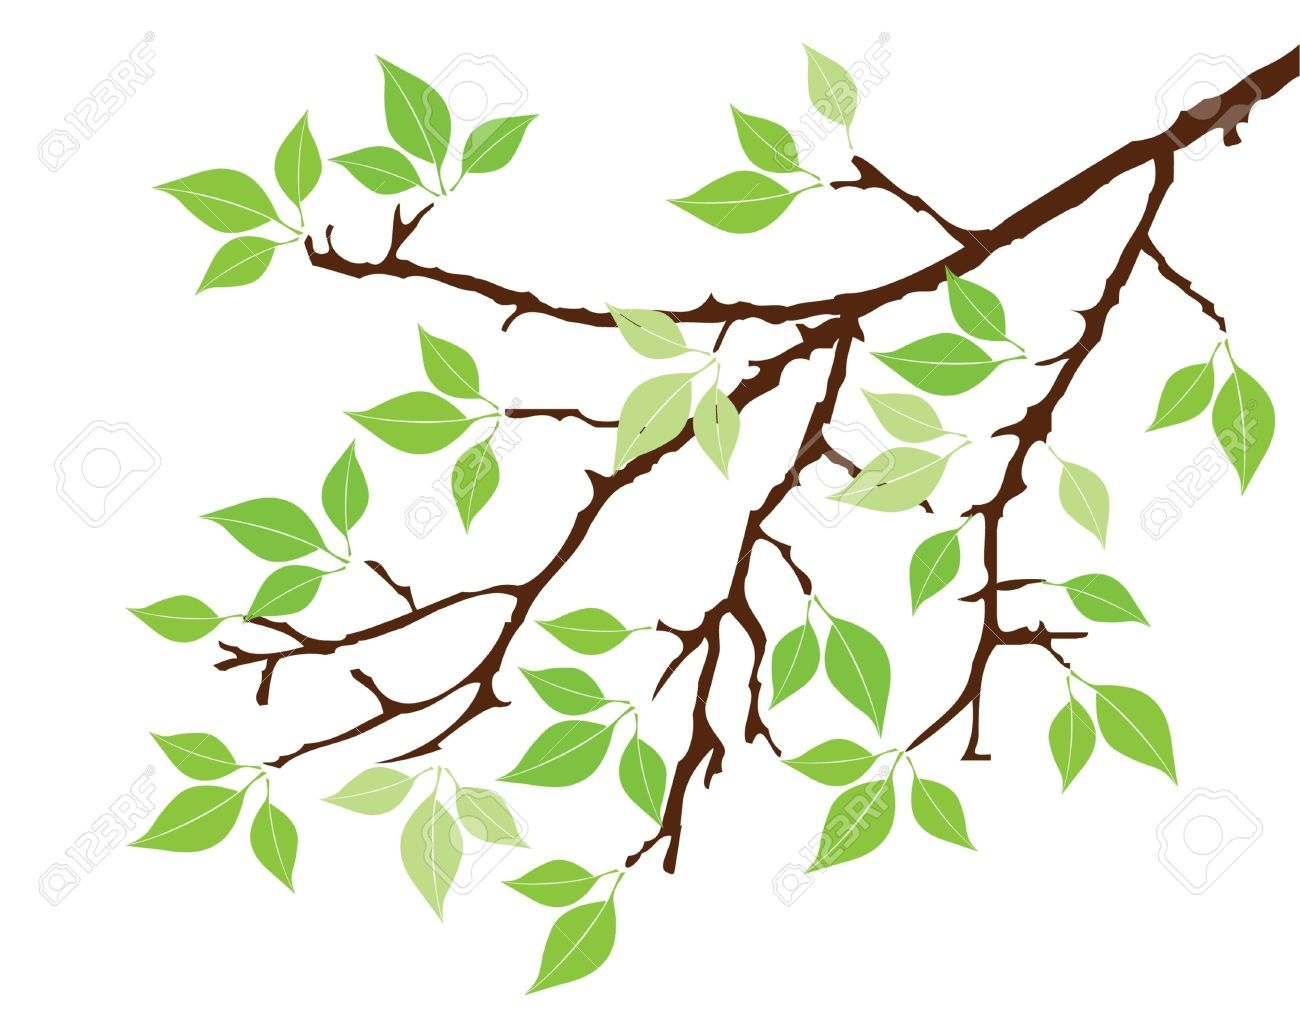 Branch clipart free graphic black and white Stock Vector | Clip Art | Vector trees, Tree stencil, Leaves vector graphic black and white